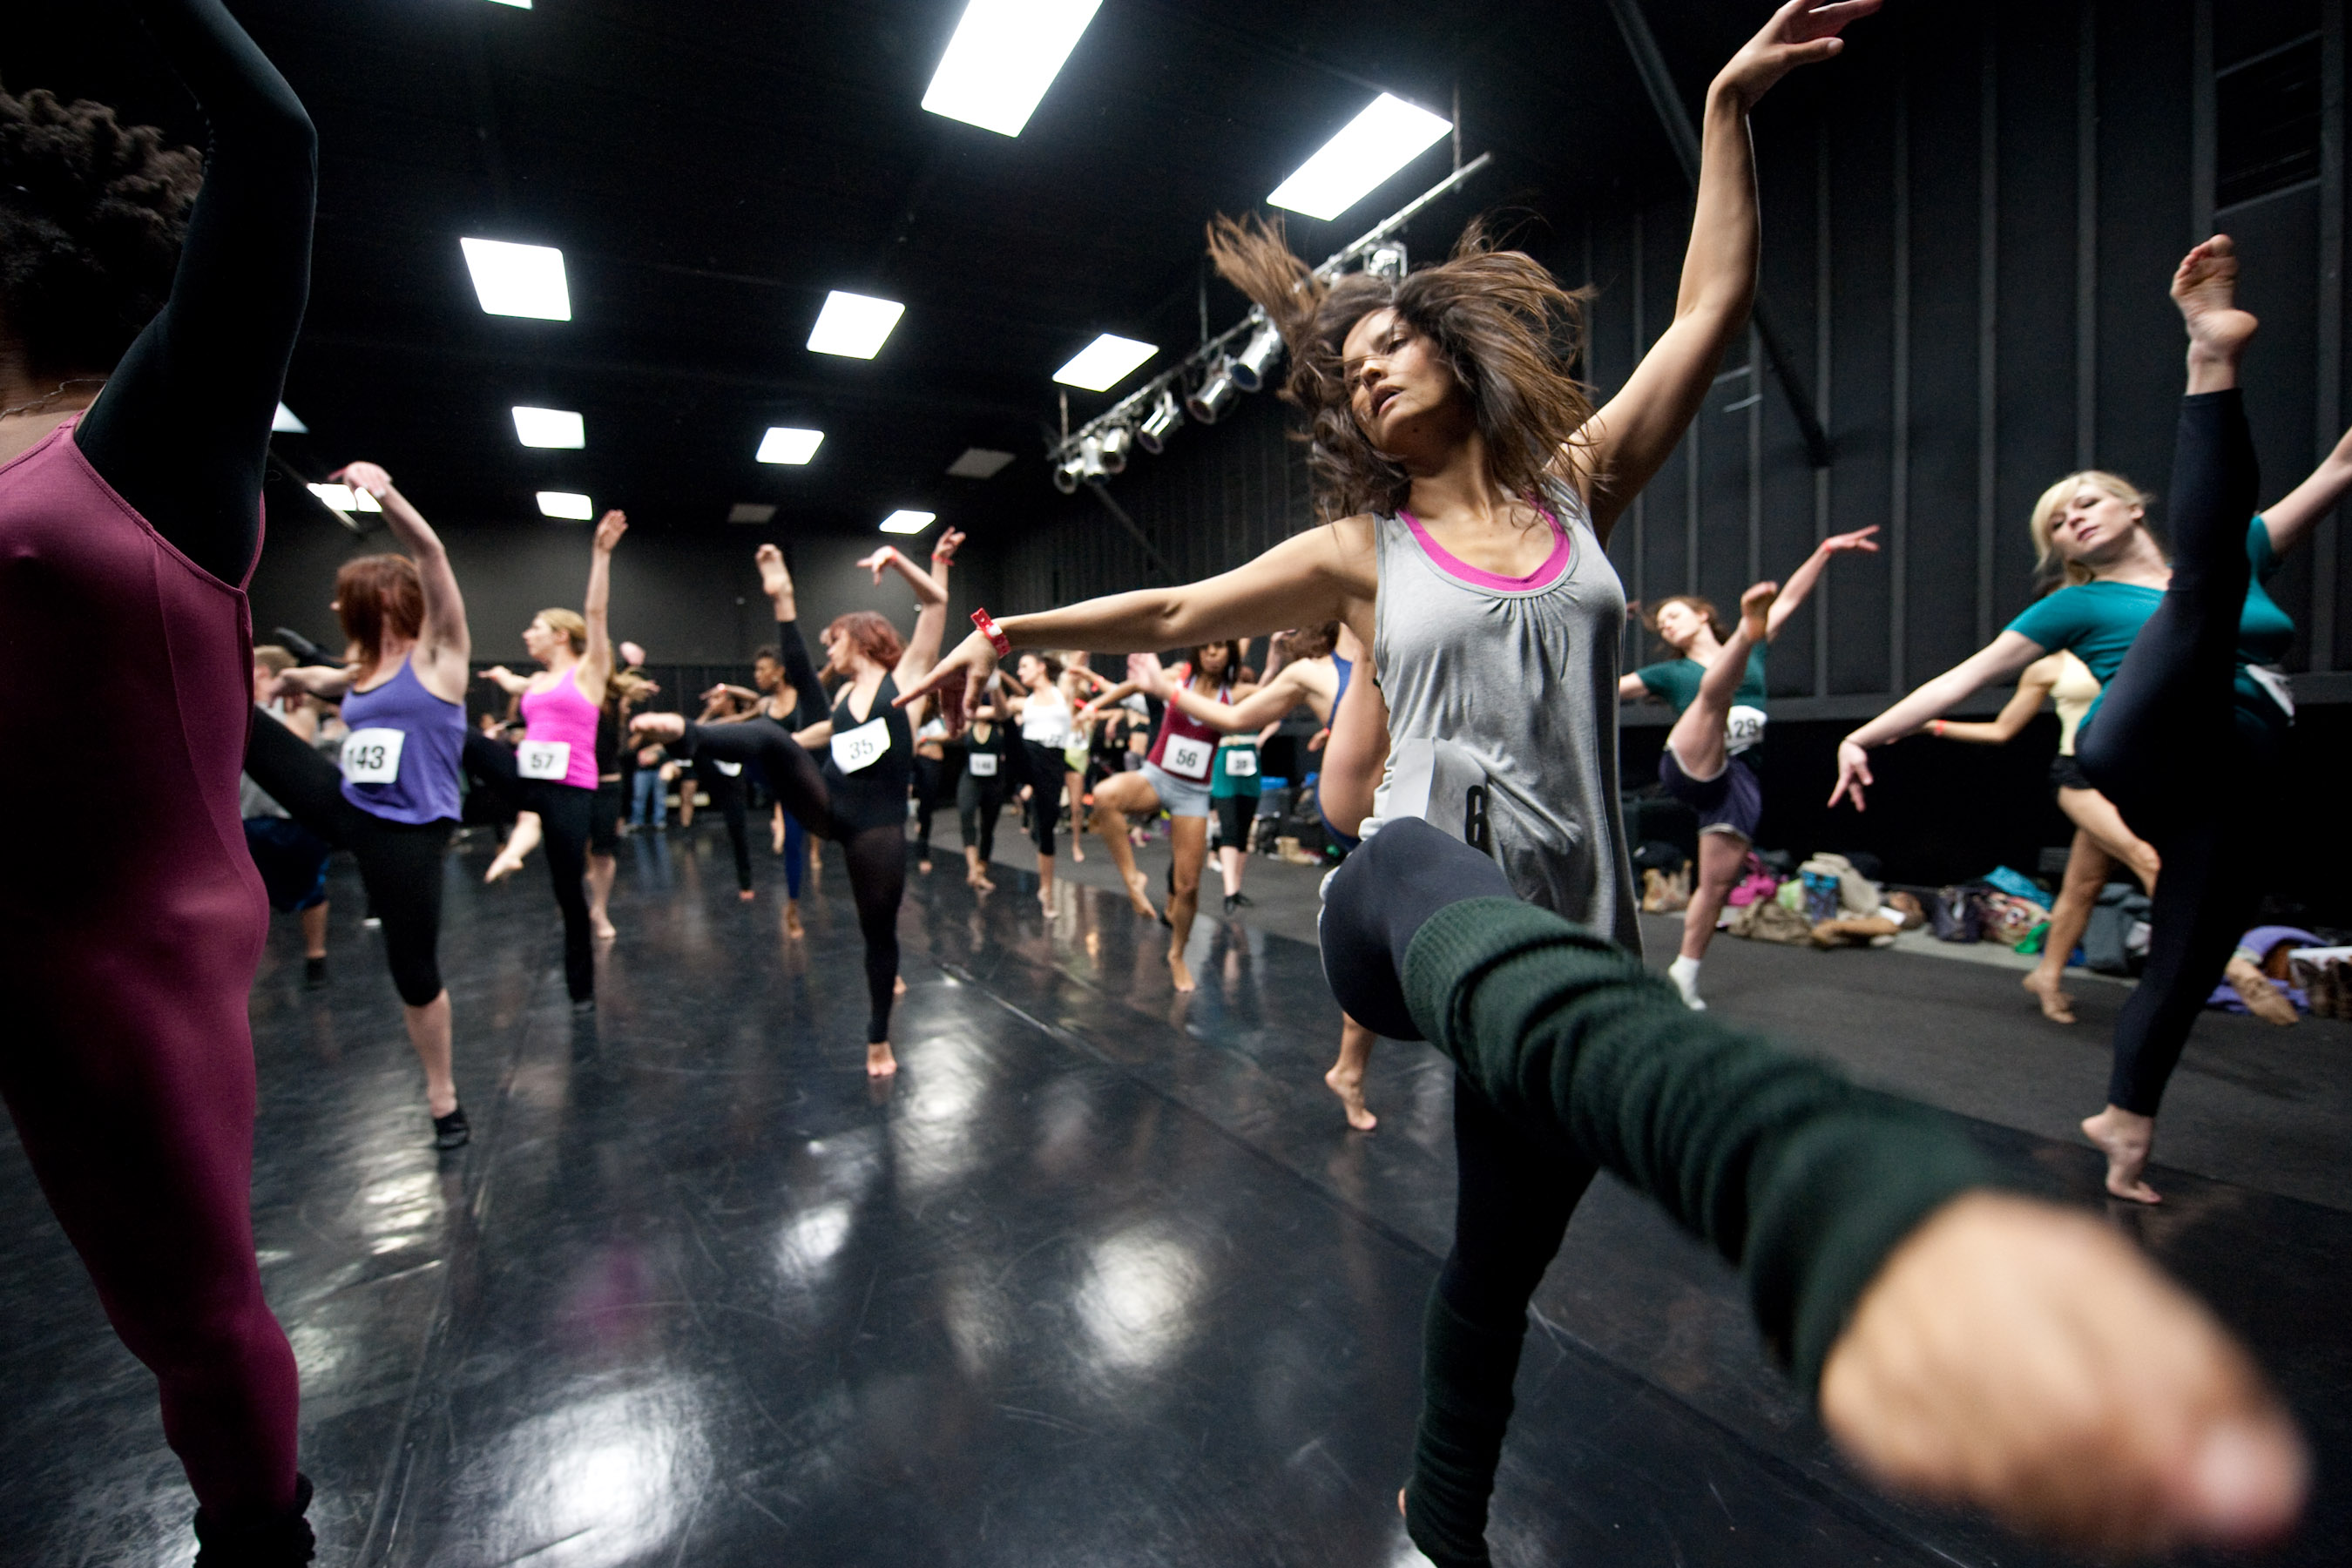 Dancers perform during the open dance auditions for the 82nd Academy Awards telecast at CenterStaging in Burbank, CA on Friday, January 22, 2010.